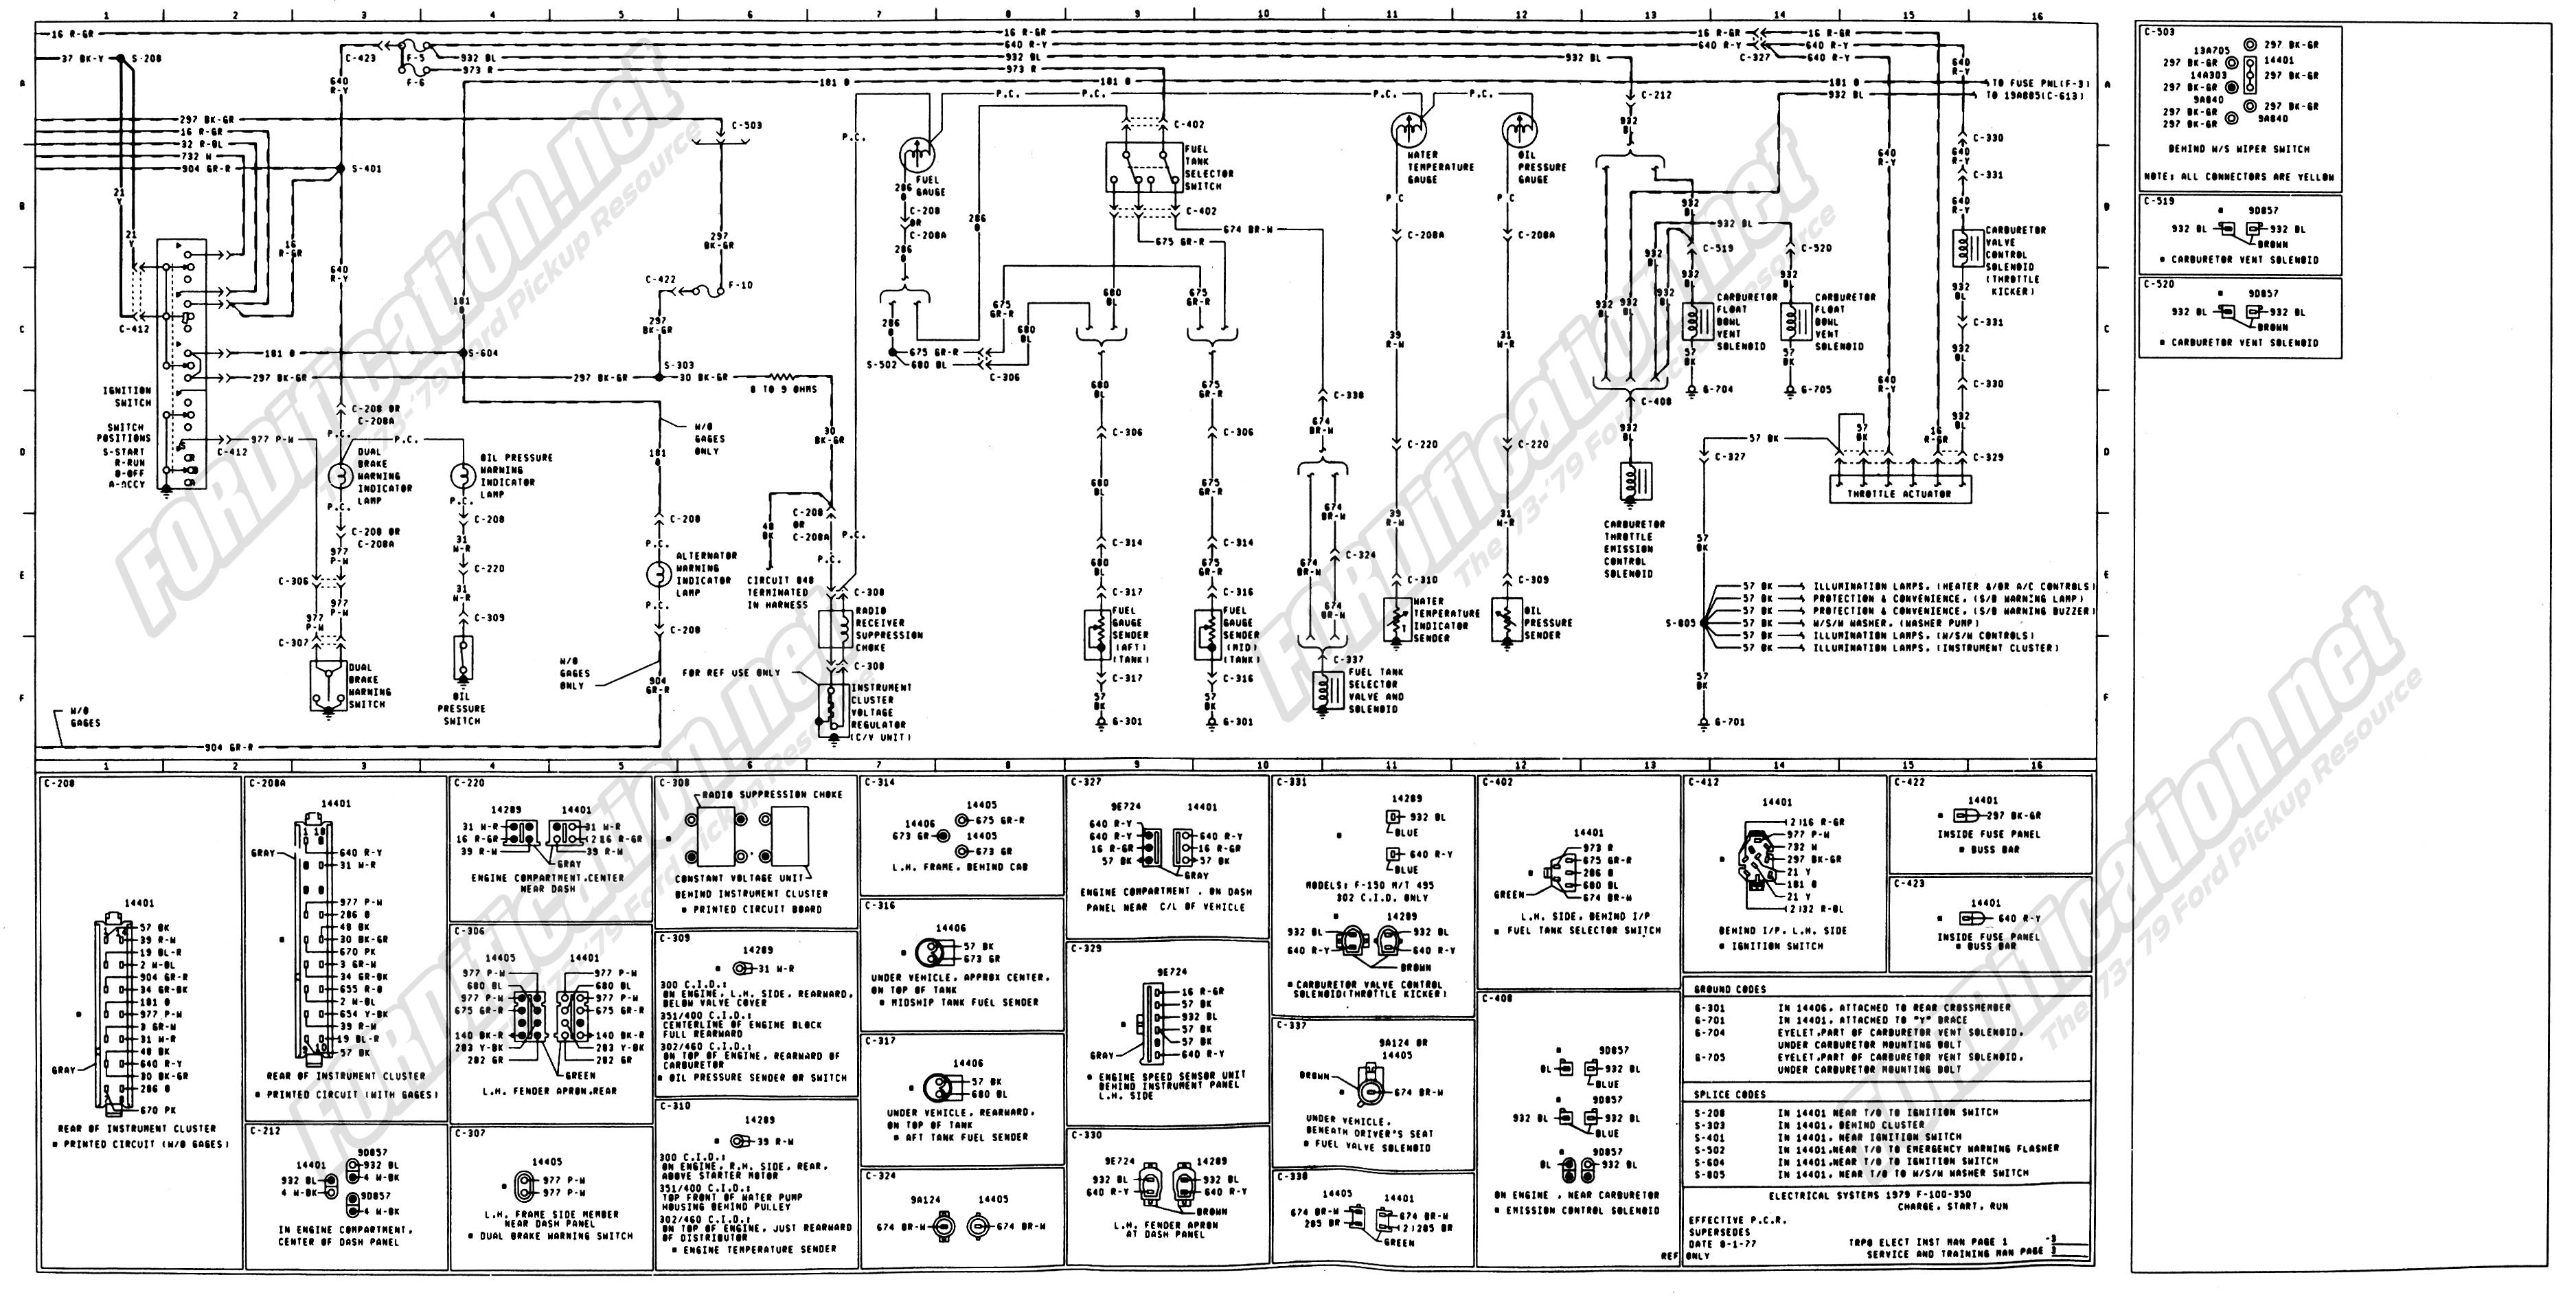 Ford Fuel Tank Selector Valve Wiring Diagram